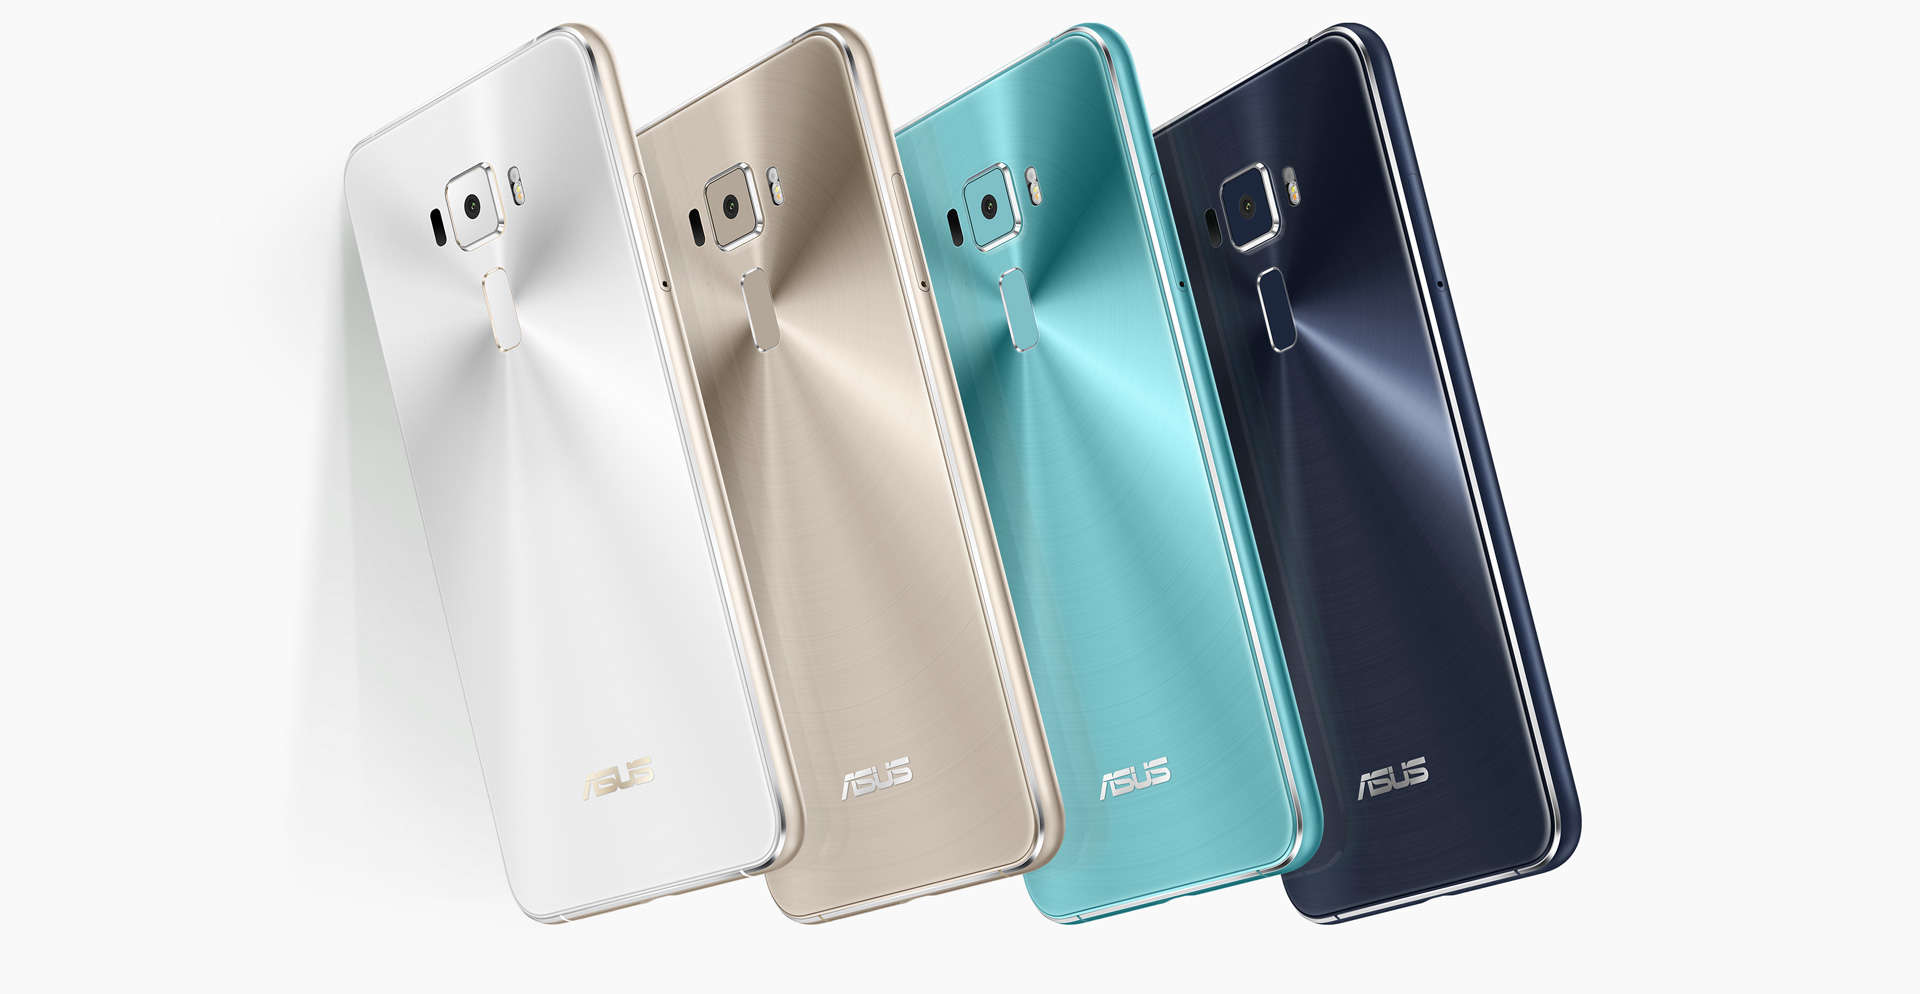 https://dlcdnimgs.asus.com/websites/global/products/CHukp94xOkwRMIP4/v2/features/images/large/1x/beauty_4phone.jpg